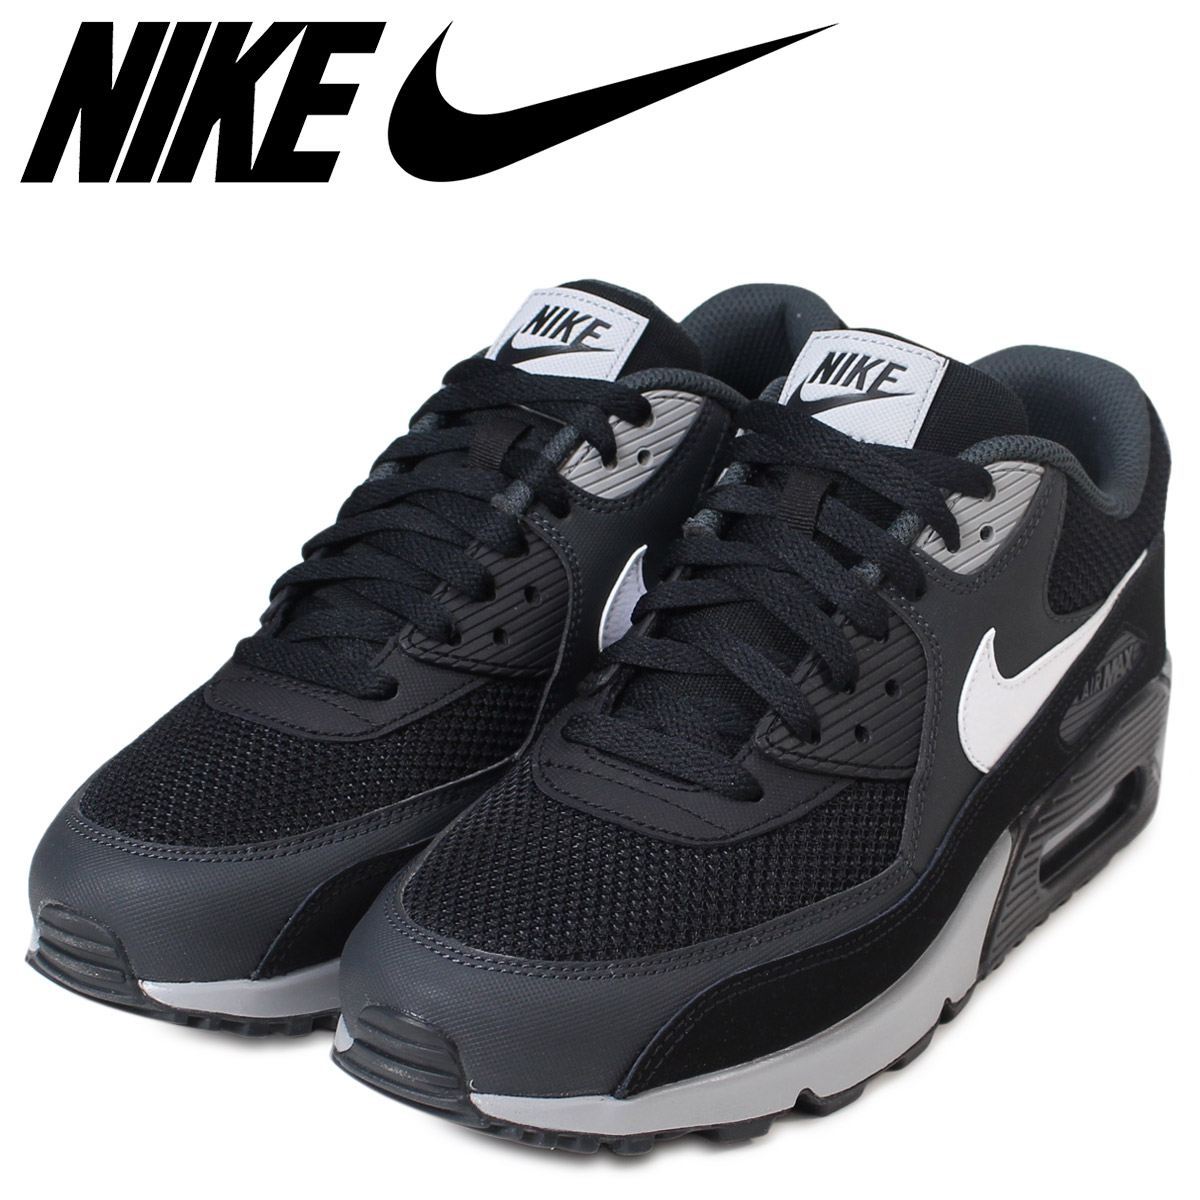 57a4e48fb4bd ALLSPORTS  Nike NIKE Air Max men sneakers AIR MAX 90 ESSENTIAL ...